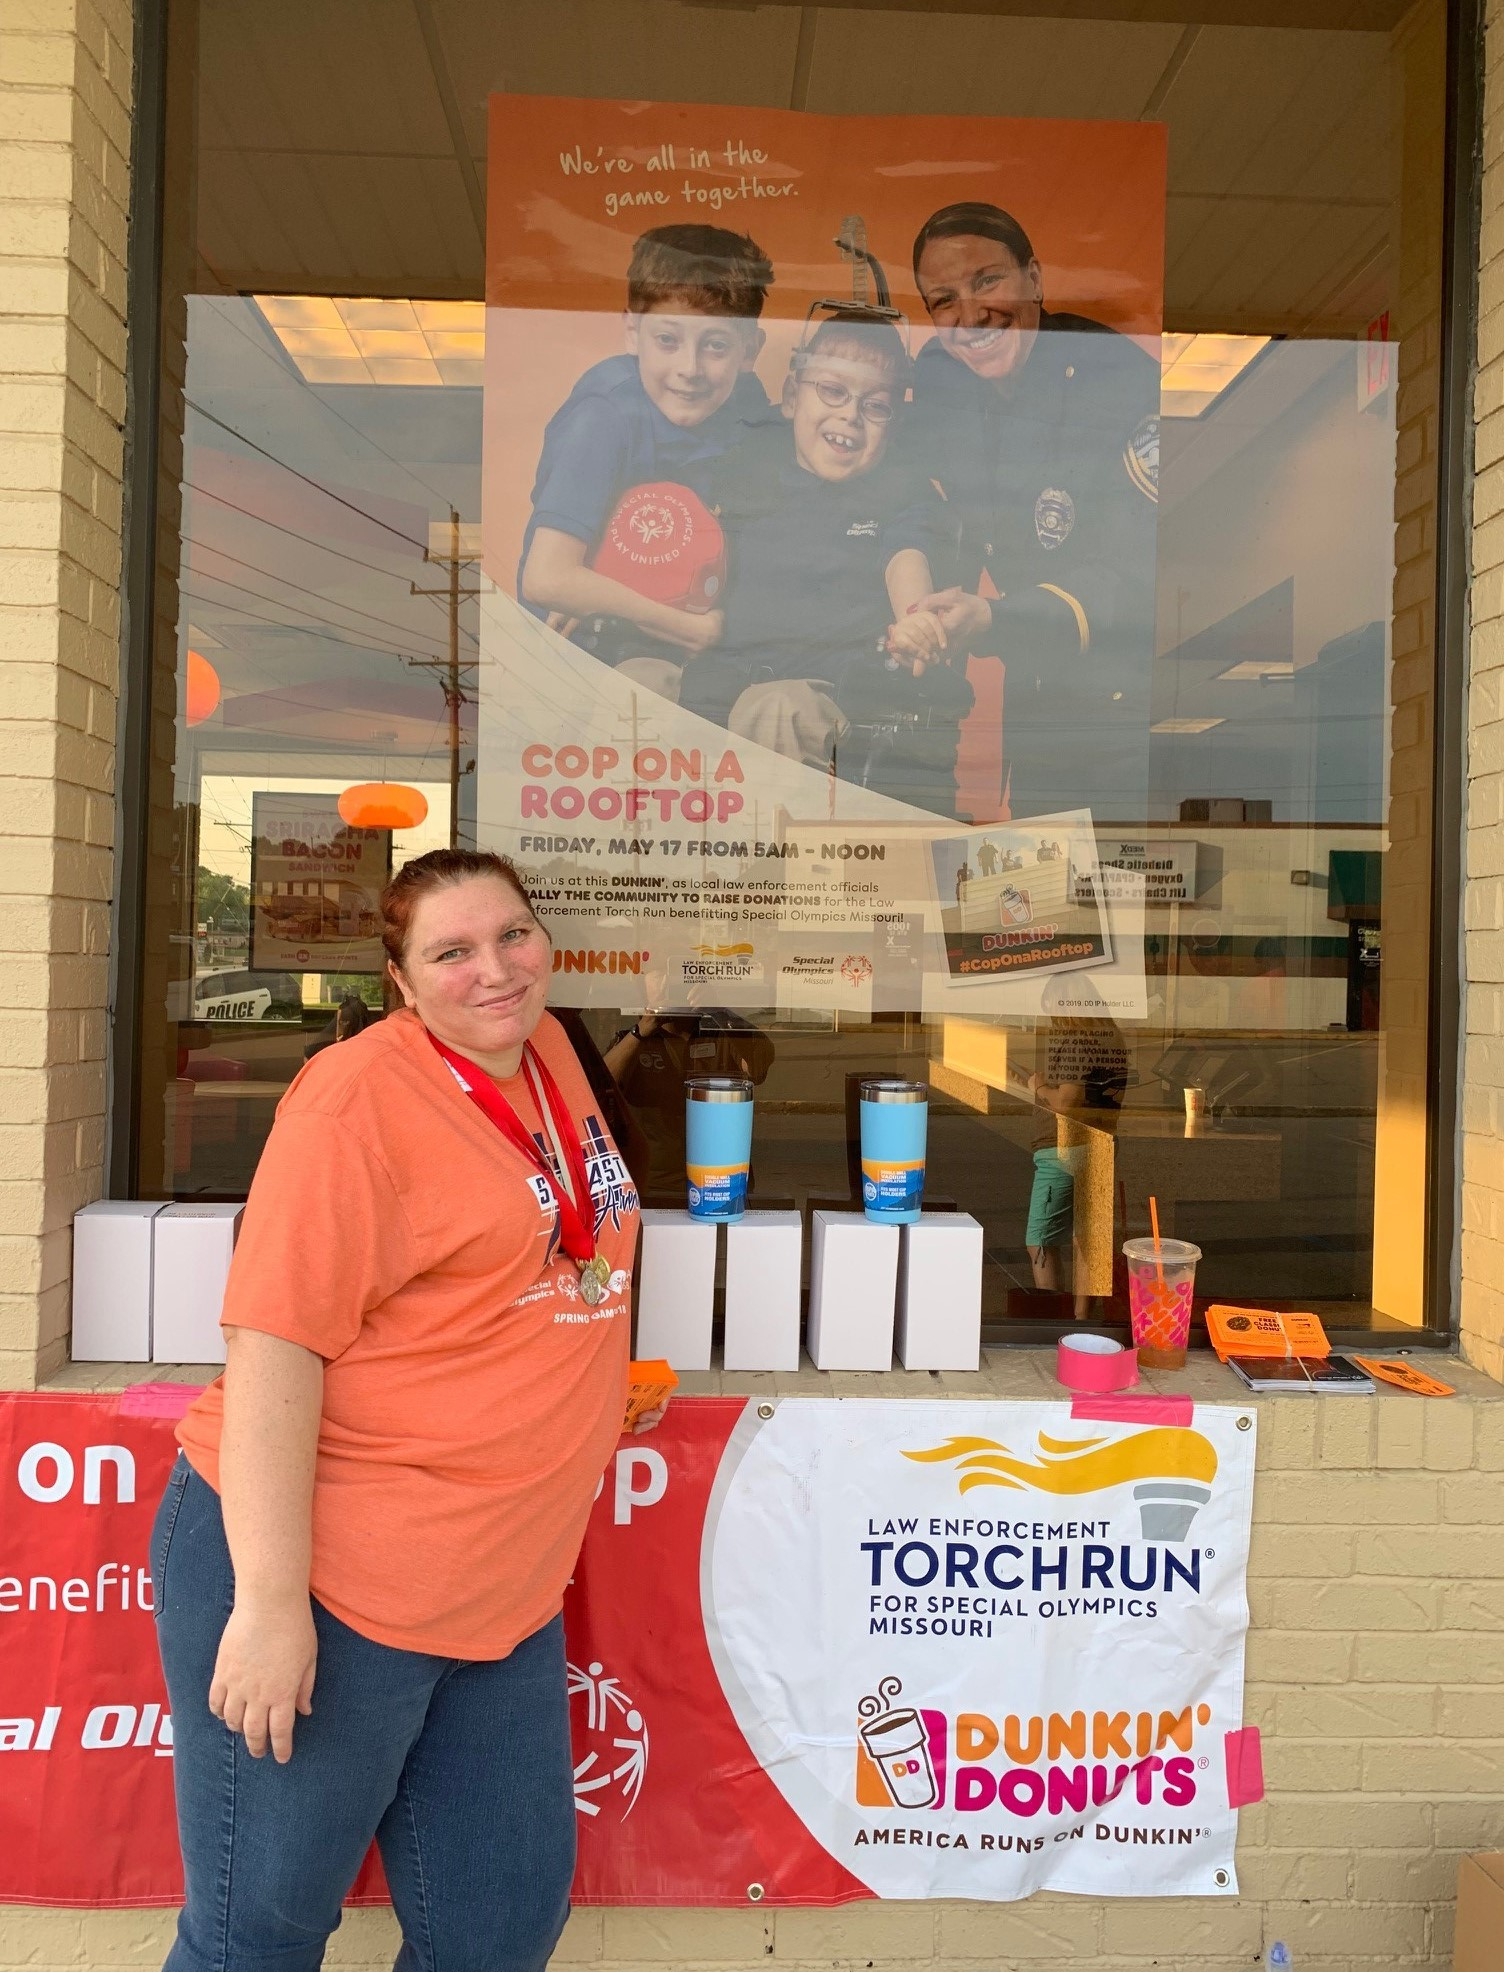 An athlete poses for a photo outside Dunkin' Donuts with a banner and giveaway mugs